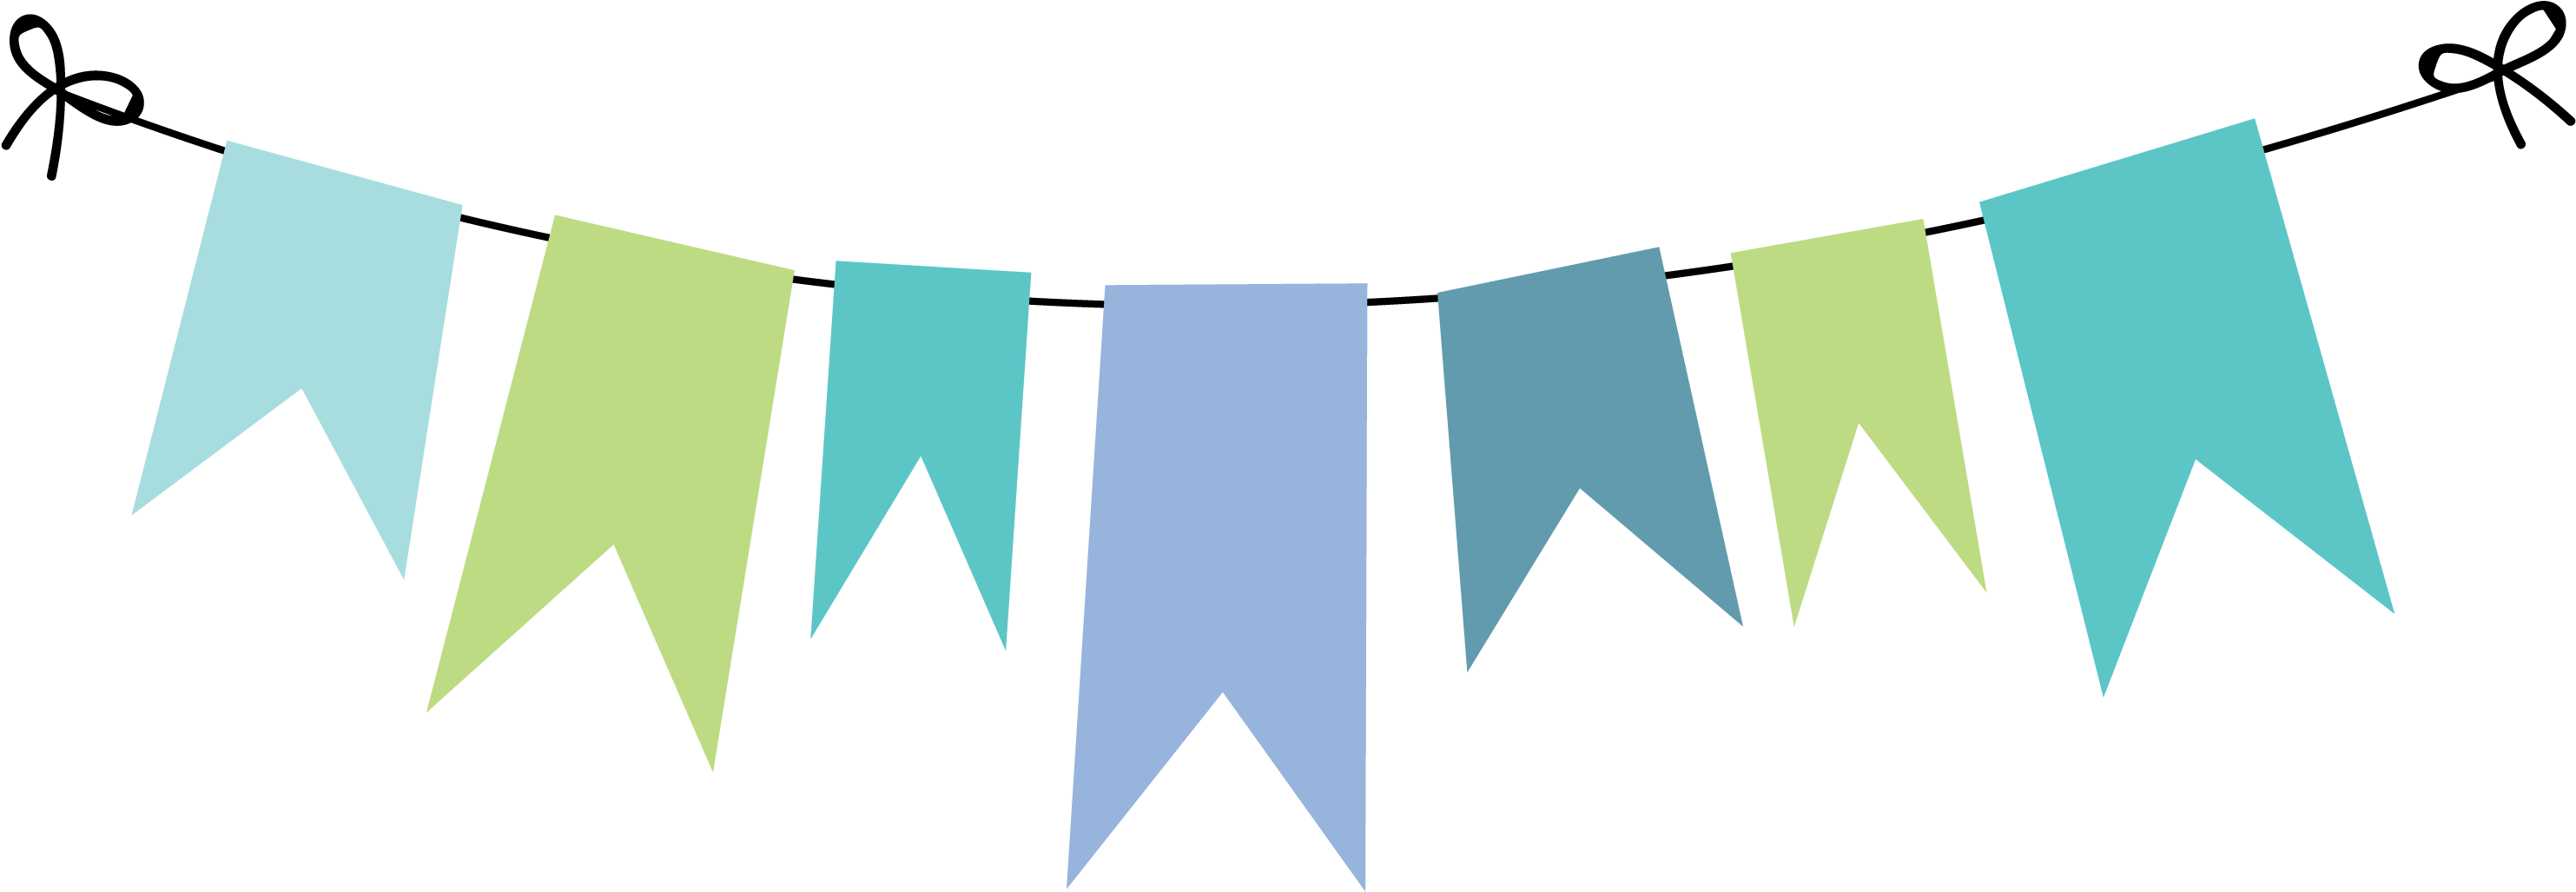 Party bunting png. Download monster inc banner